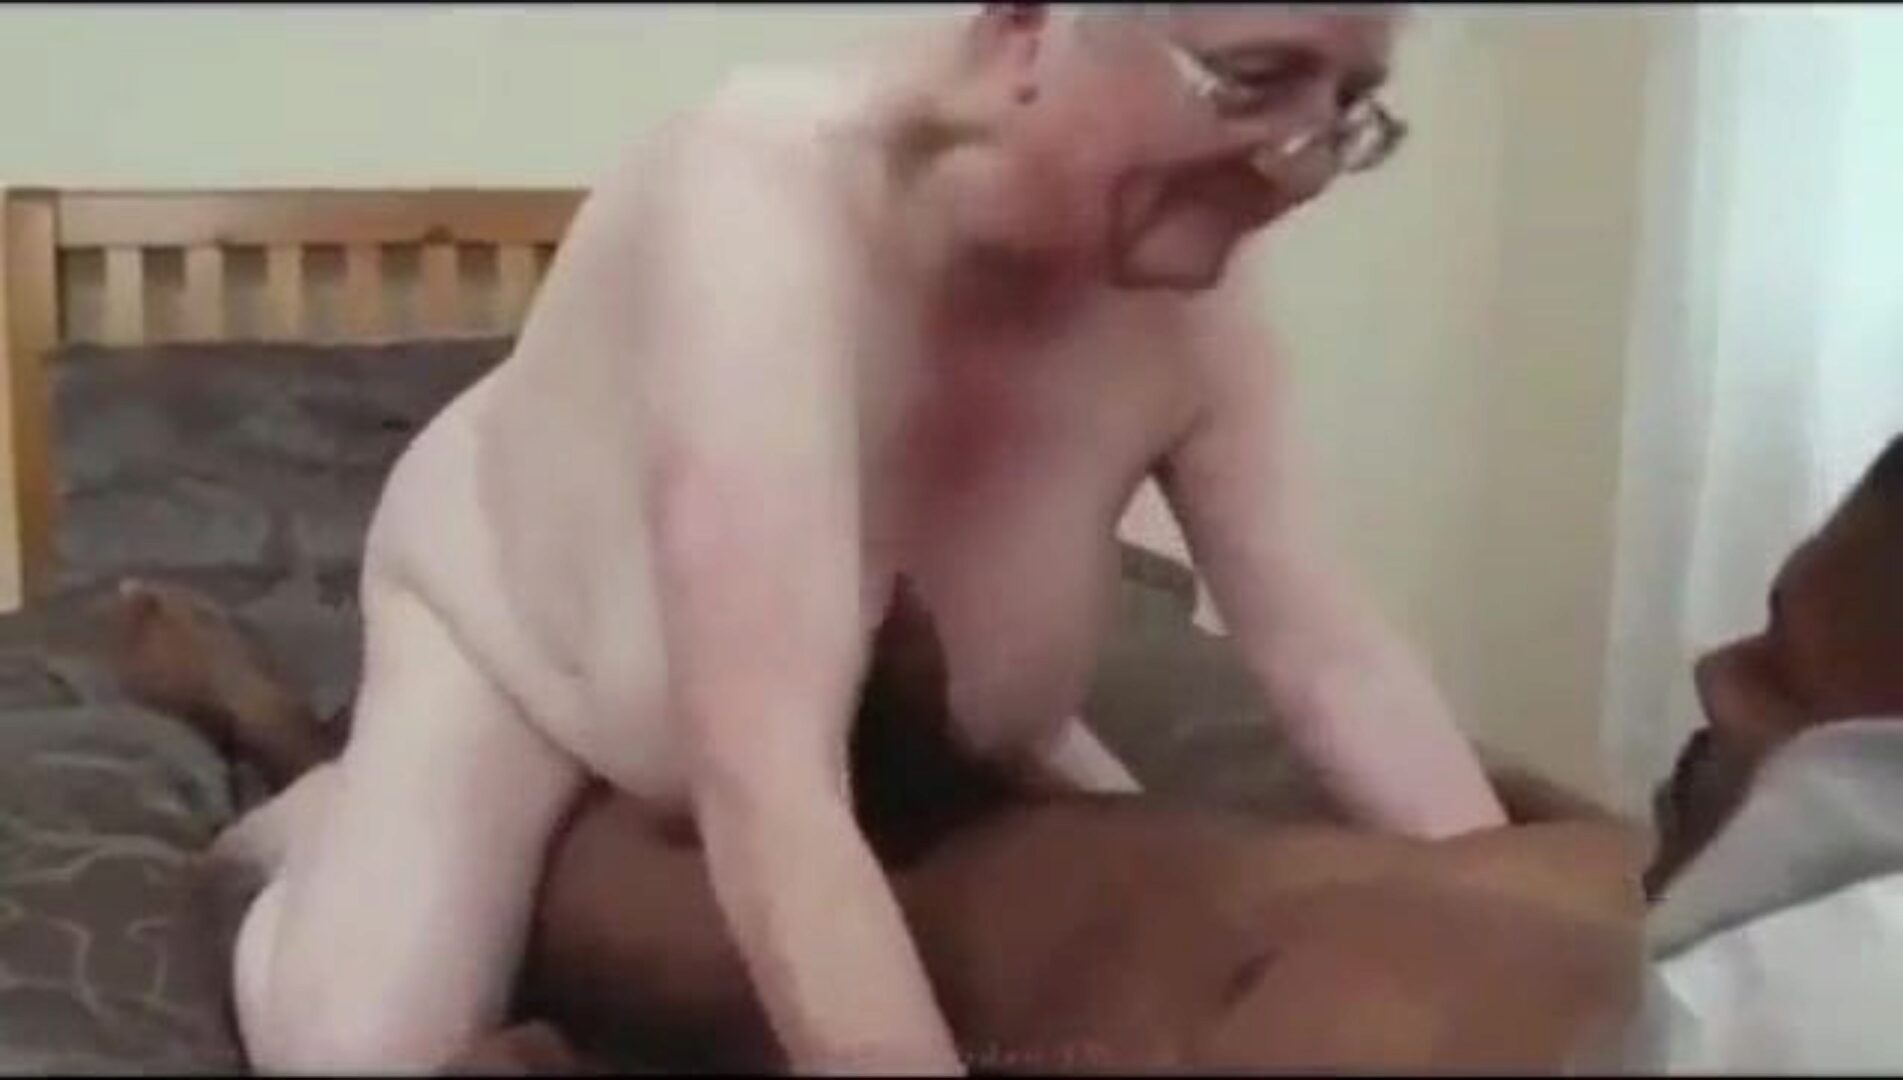 Granny Caroline Fucks Black Cock Old grandmother Caroline getting screwed by a valuable BBC. She's undoubtedly a grandmother I wish to plow